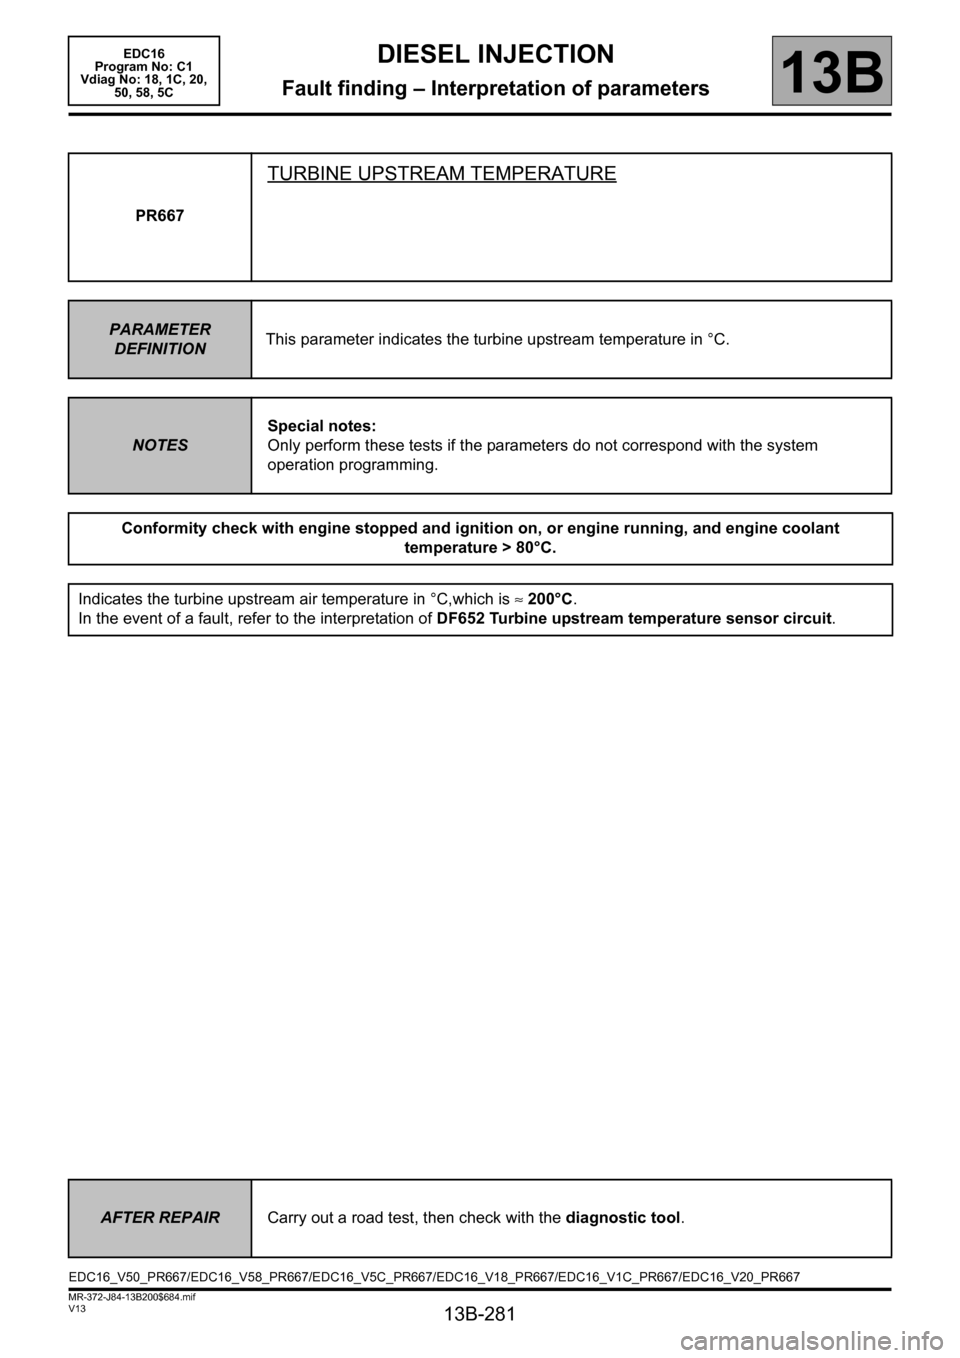 RENAULT SCENIC 2011 J95 / 3.G Engine And Peripherals EDC16 Workshop Manual, Page 281